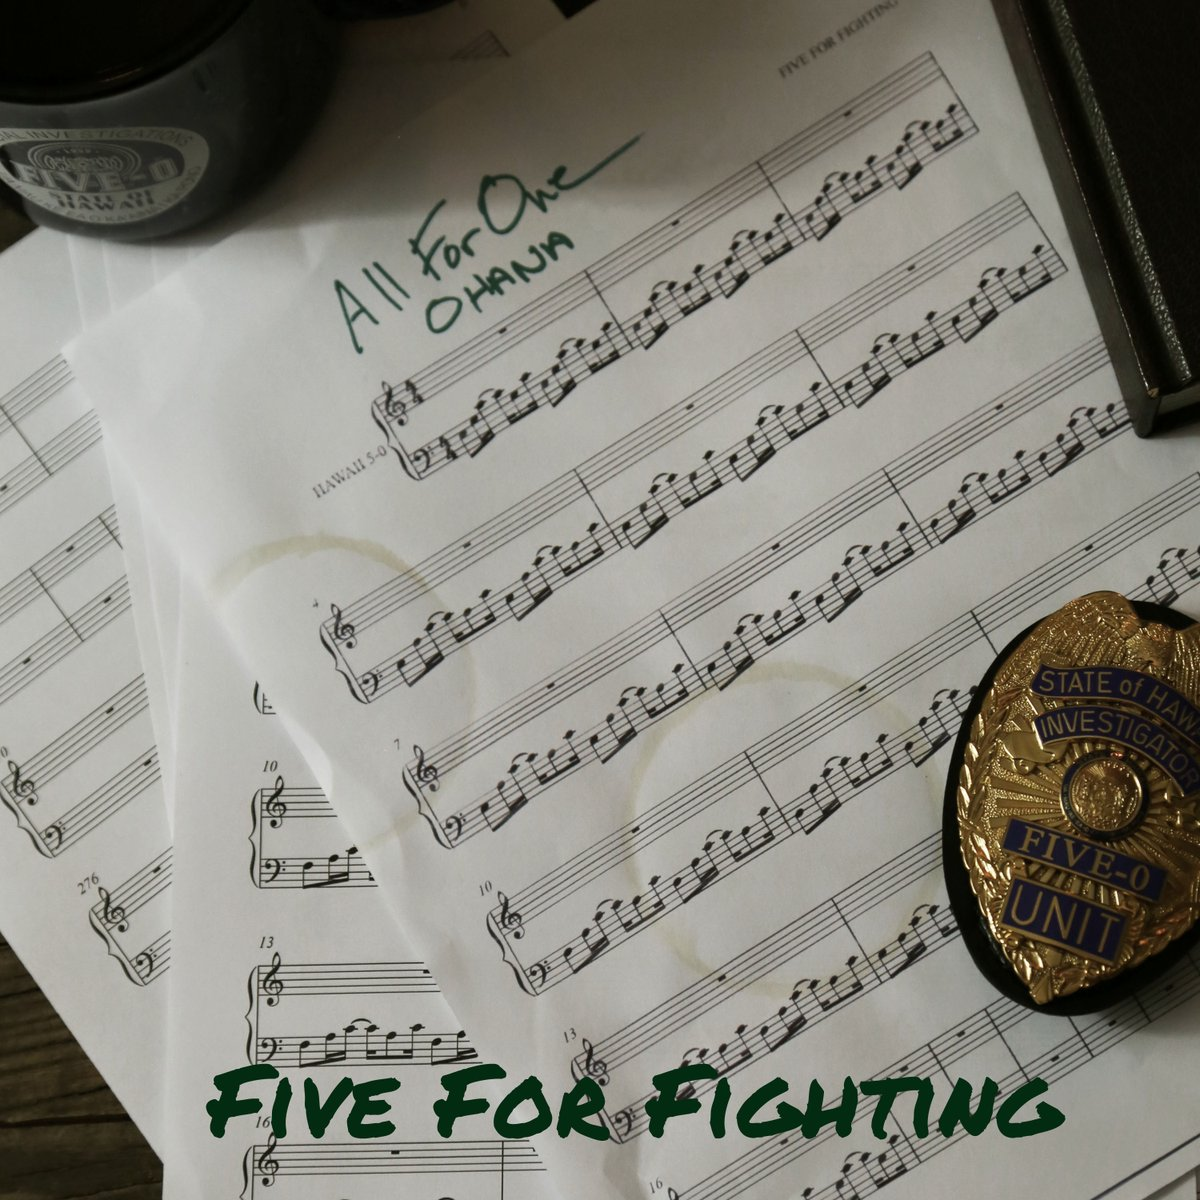 All For One Ohana from the Series Finale of @HawaiiFive0CBS is finally available on all streaming platforms! Search Five For Fighting and the song will be my latest release. Mahalo! @PLenkov @H50_Writers @HawaiiNewsNow